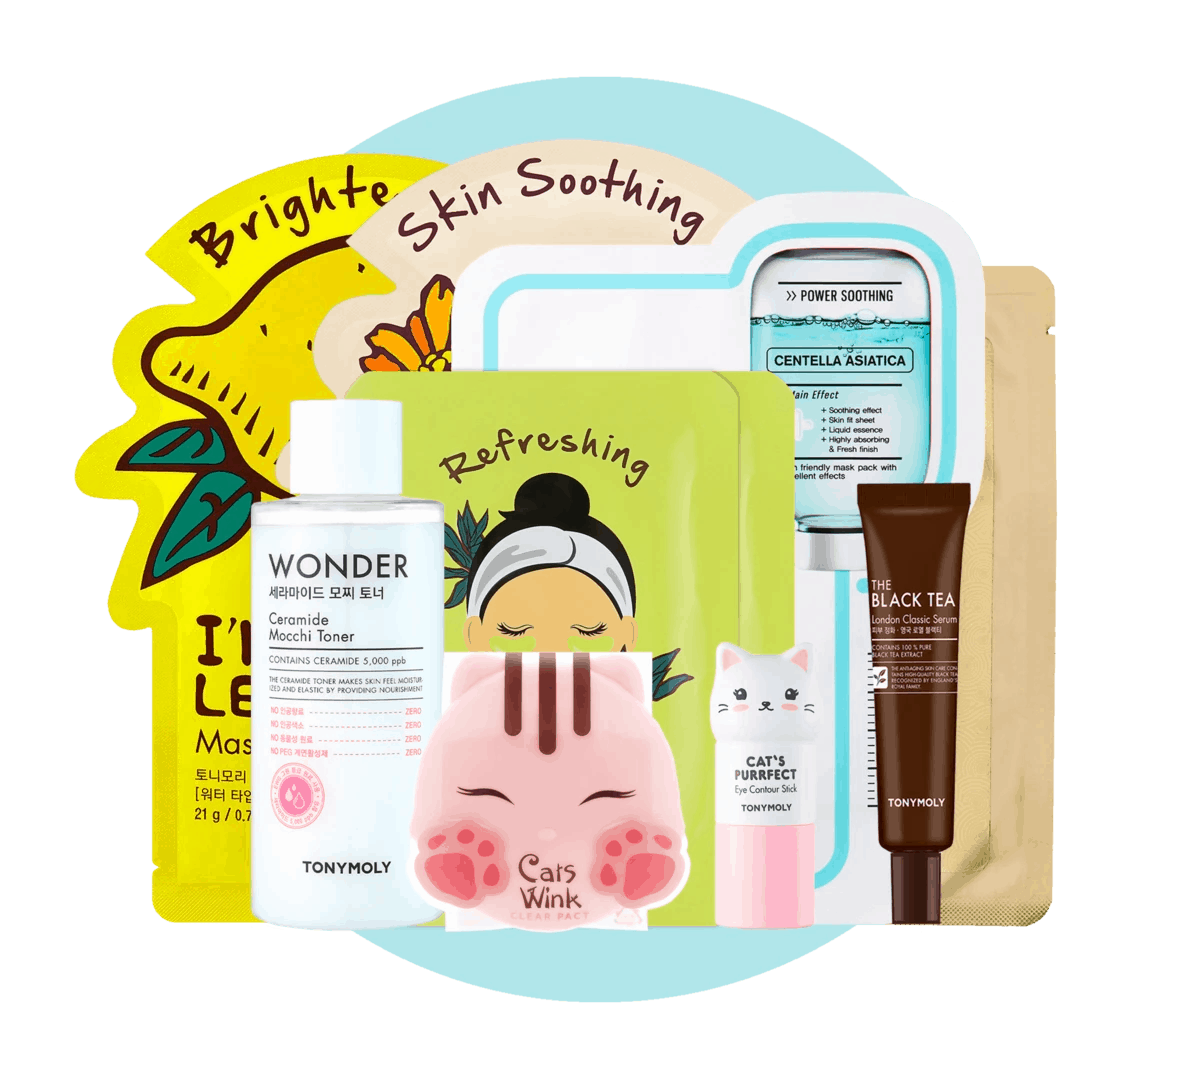 Tony Moly January 2020 Monthly Bundle Available Now + Full Spoilers!